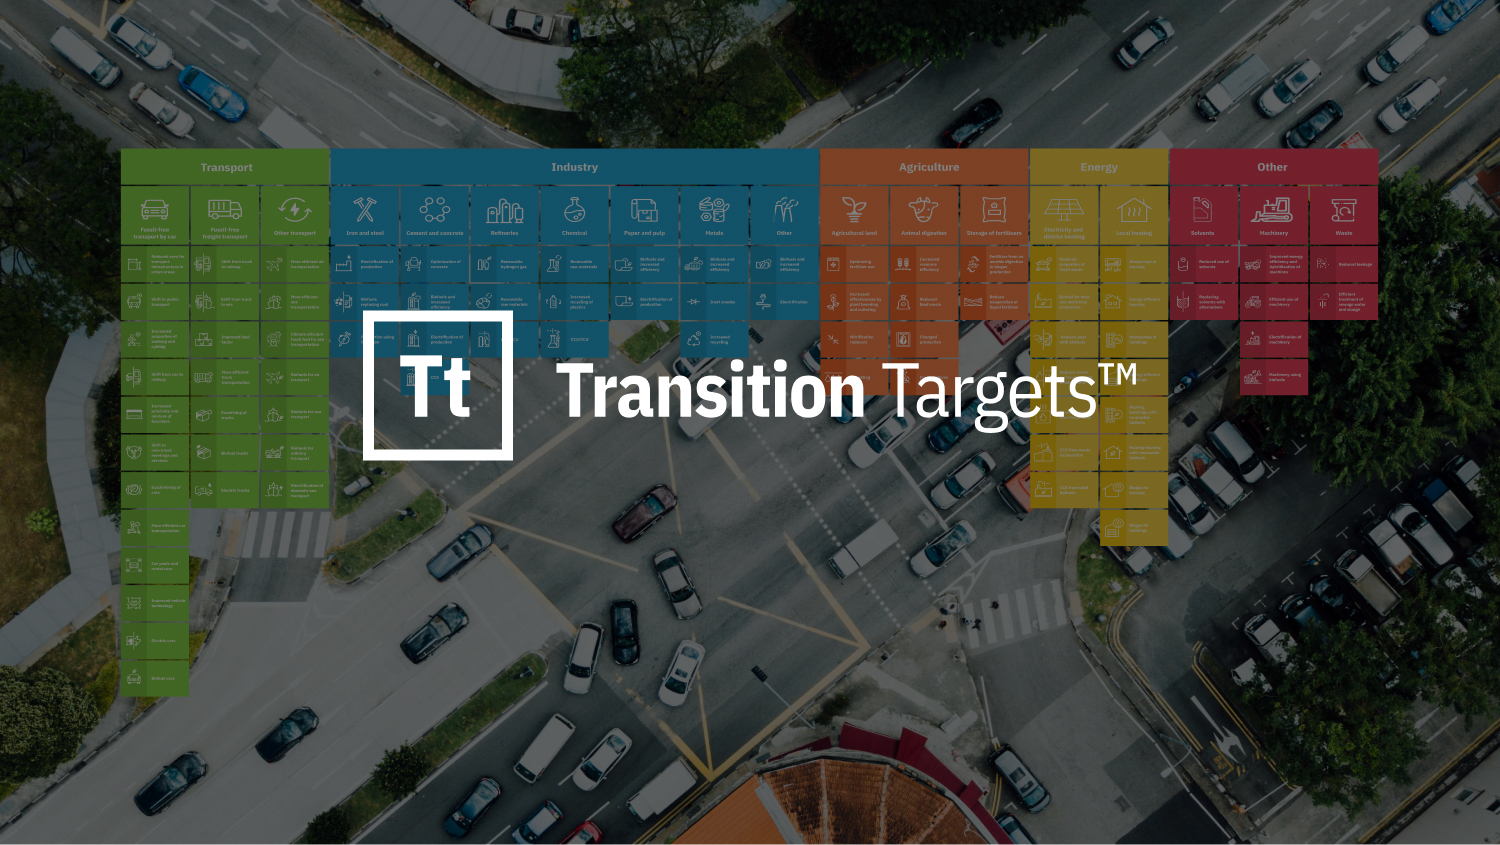 ‍ClimateView today released the open-data initiative Transition Targets. Designed for cities, regions, and nations. Visit www.transitiontargets.org to download the white paper.